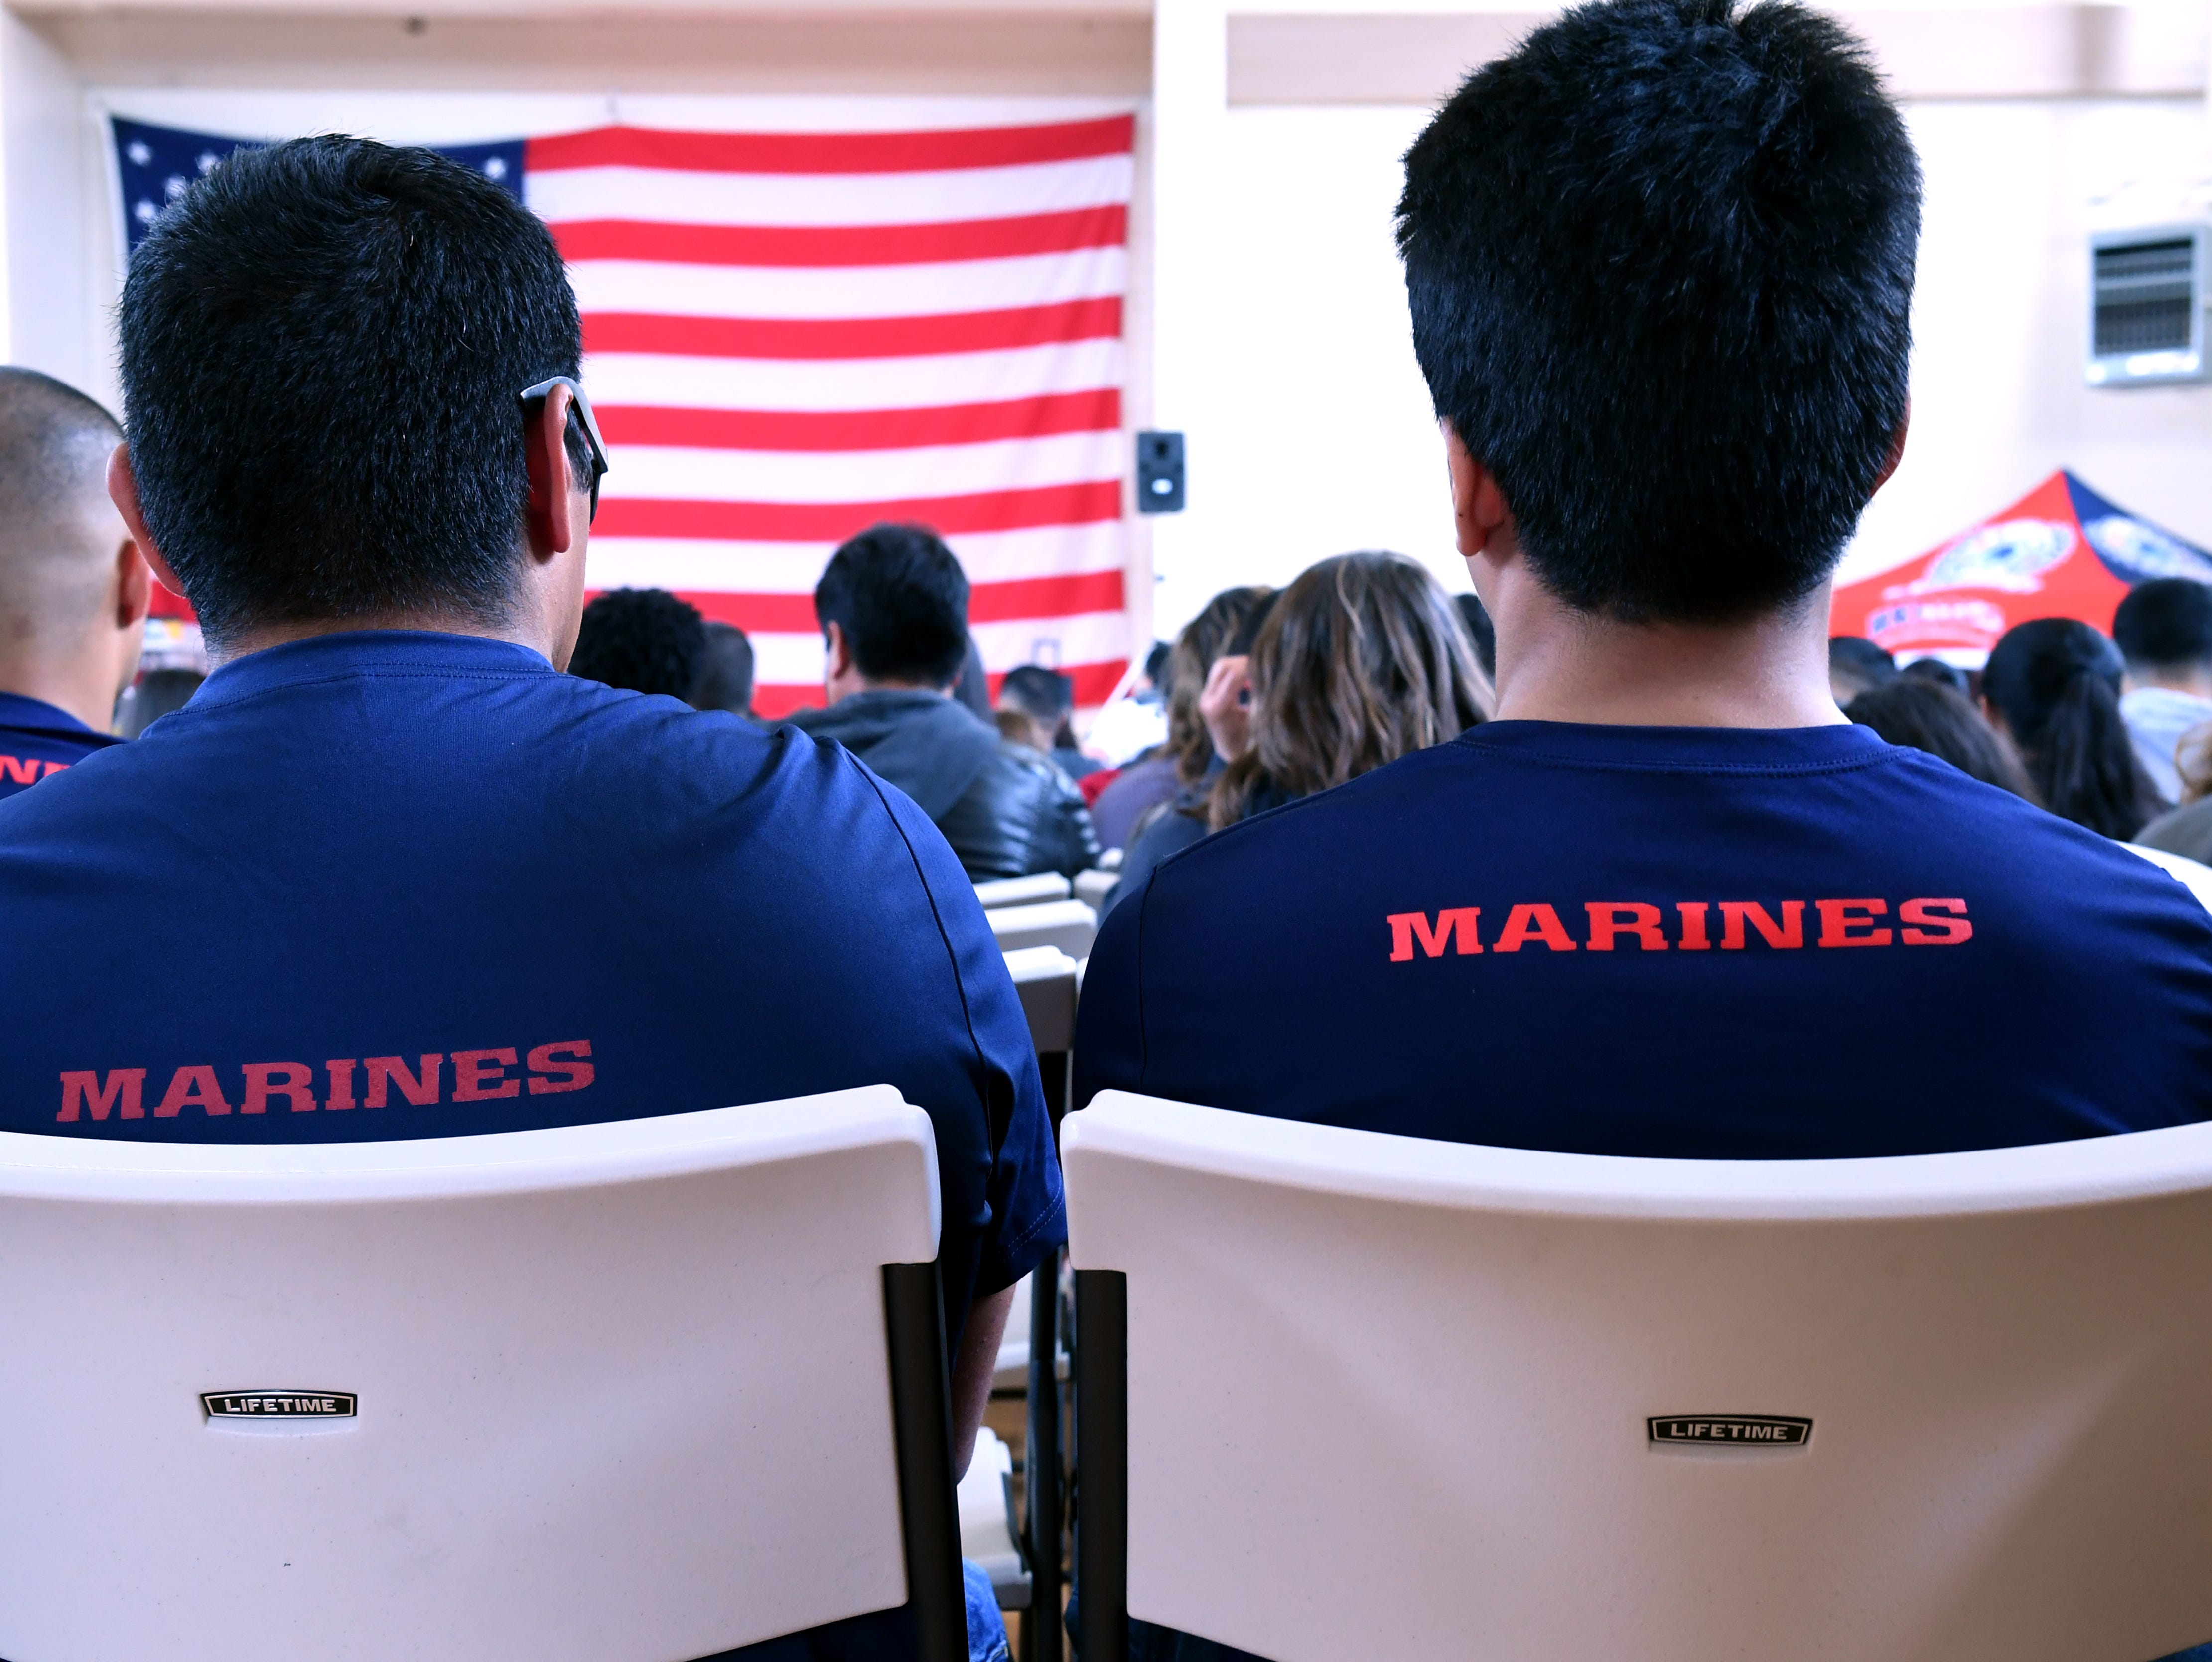 Monterey County teens bound for the Marine Corps listen to speeches at Saturday's event celebrating servicemembers. April 20, 2019.